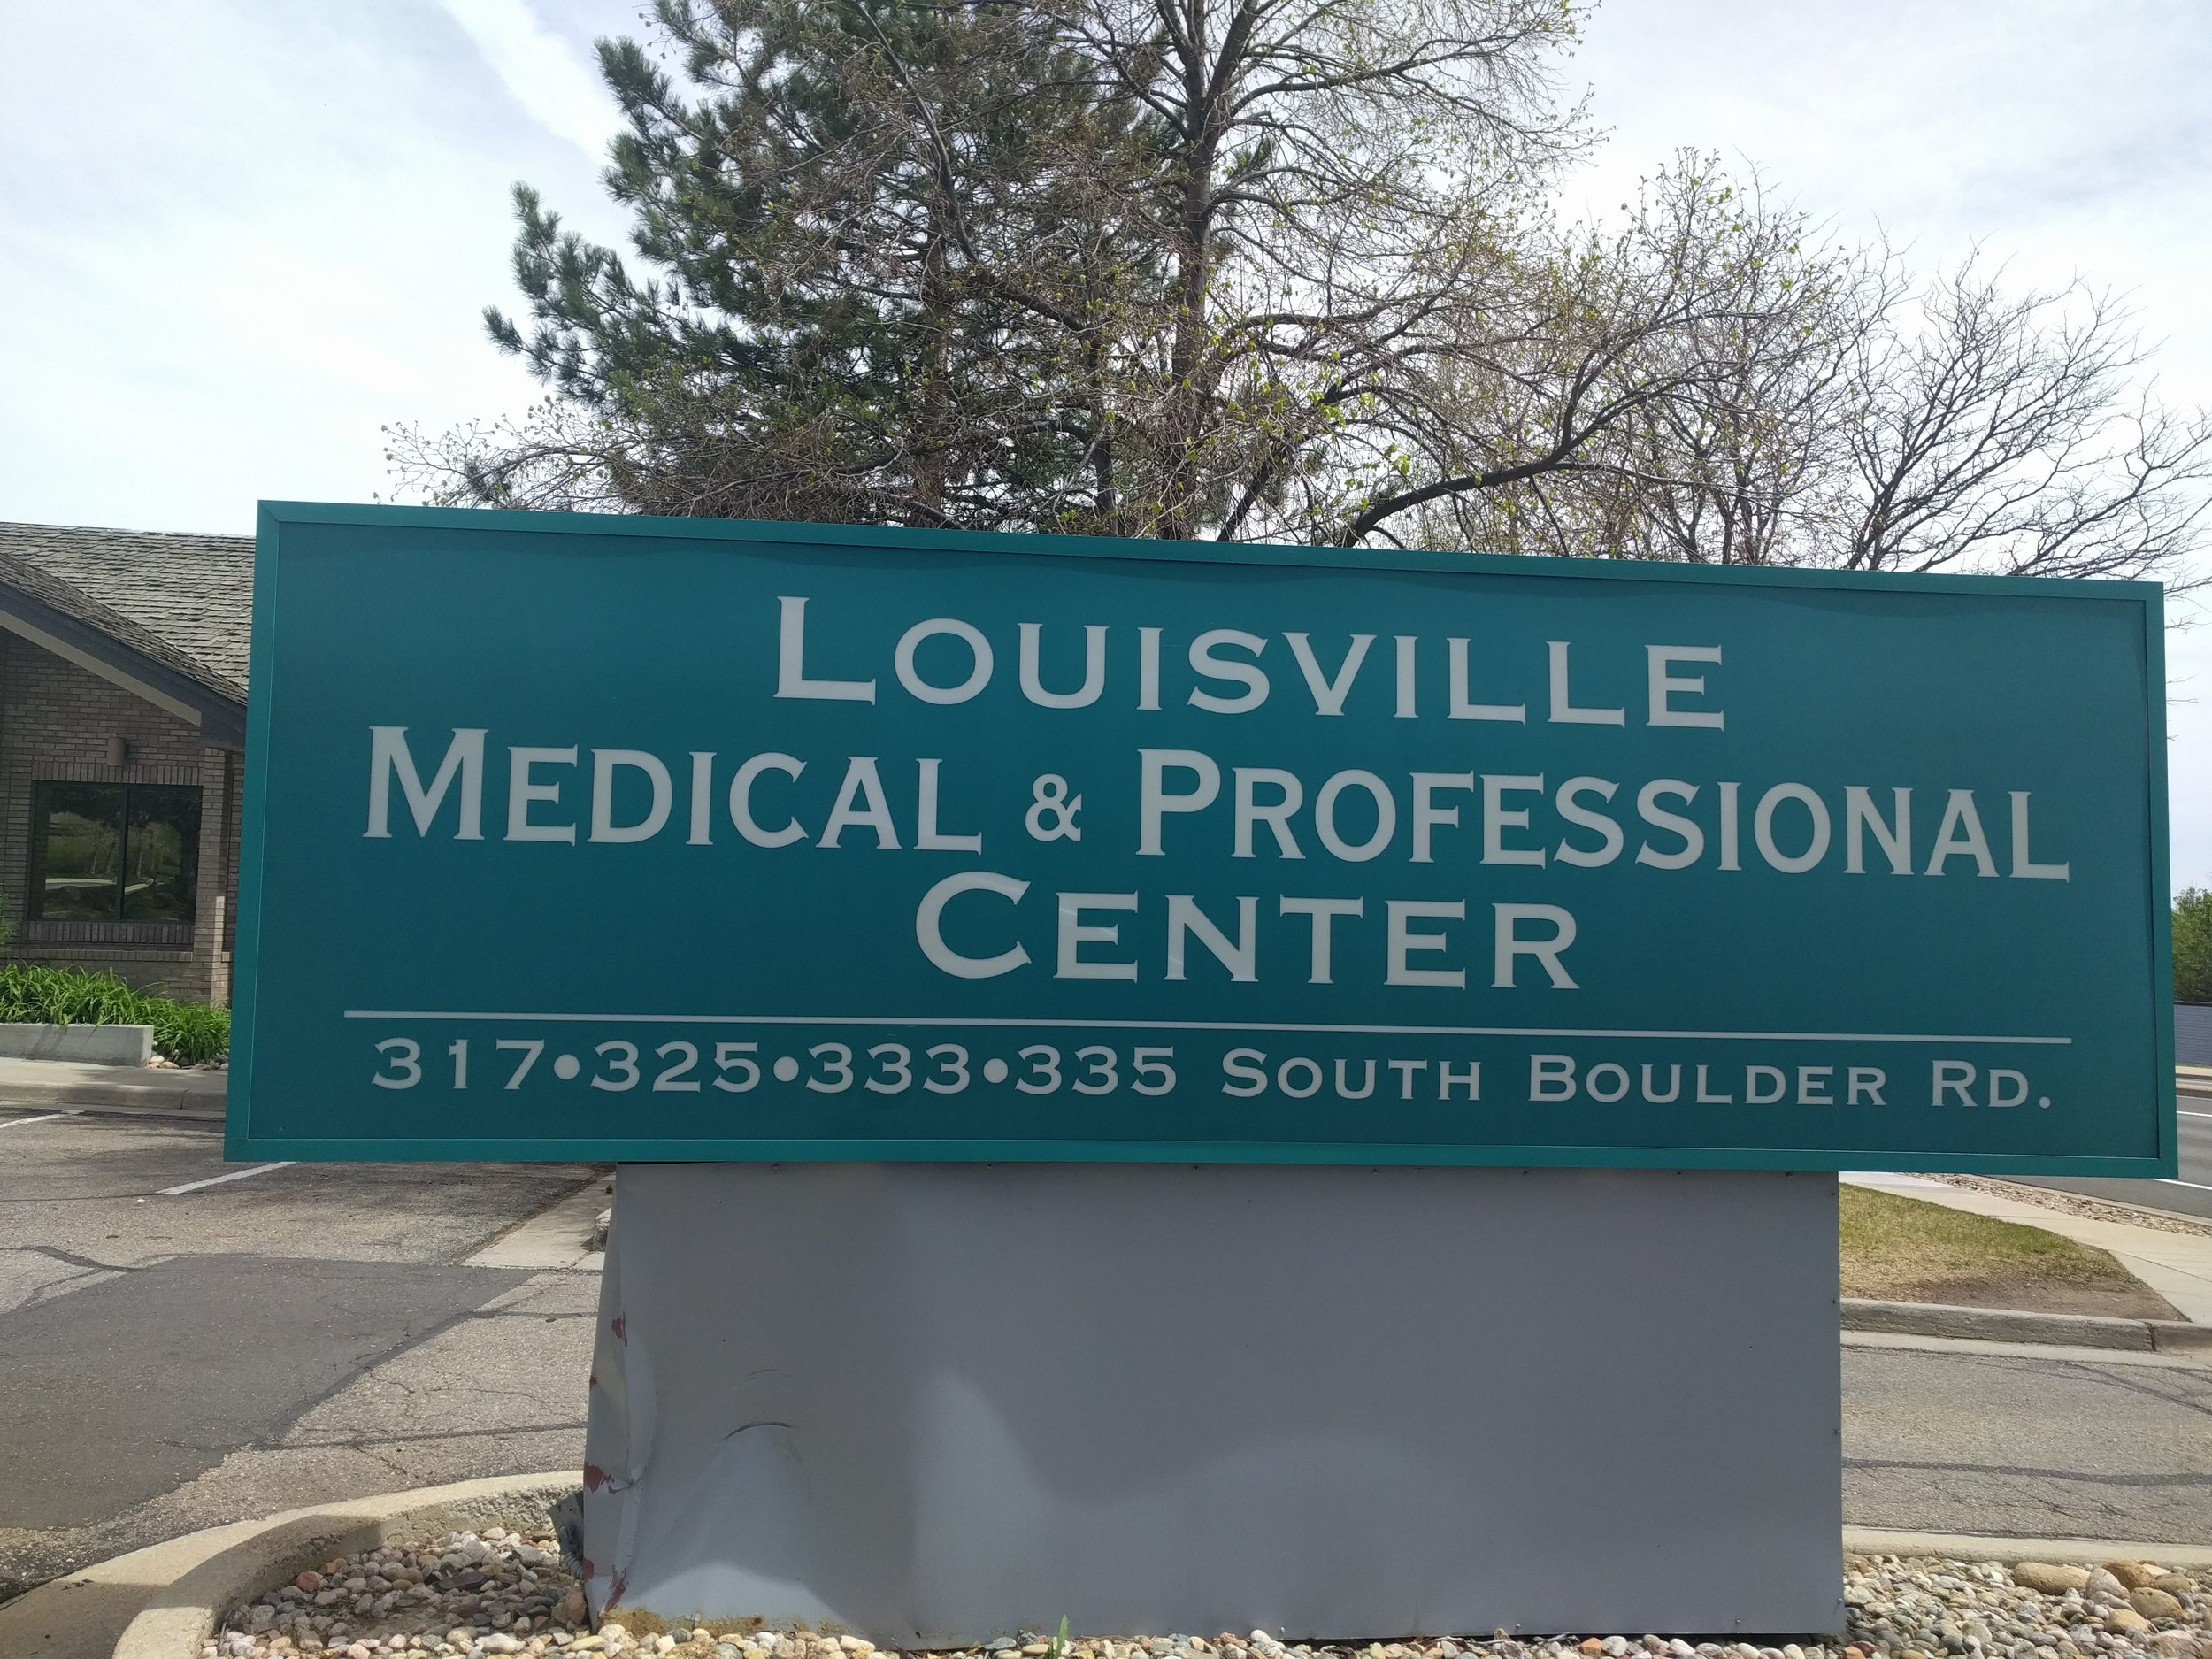 *Look for the Teal sign 'Louisville Professional and Medical Buildings' on North side of S. Boulder between Via Appia and Garfield. Inside the ITEA acupuncture building.